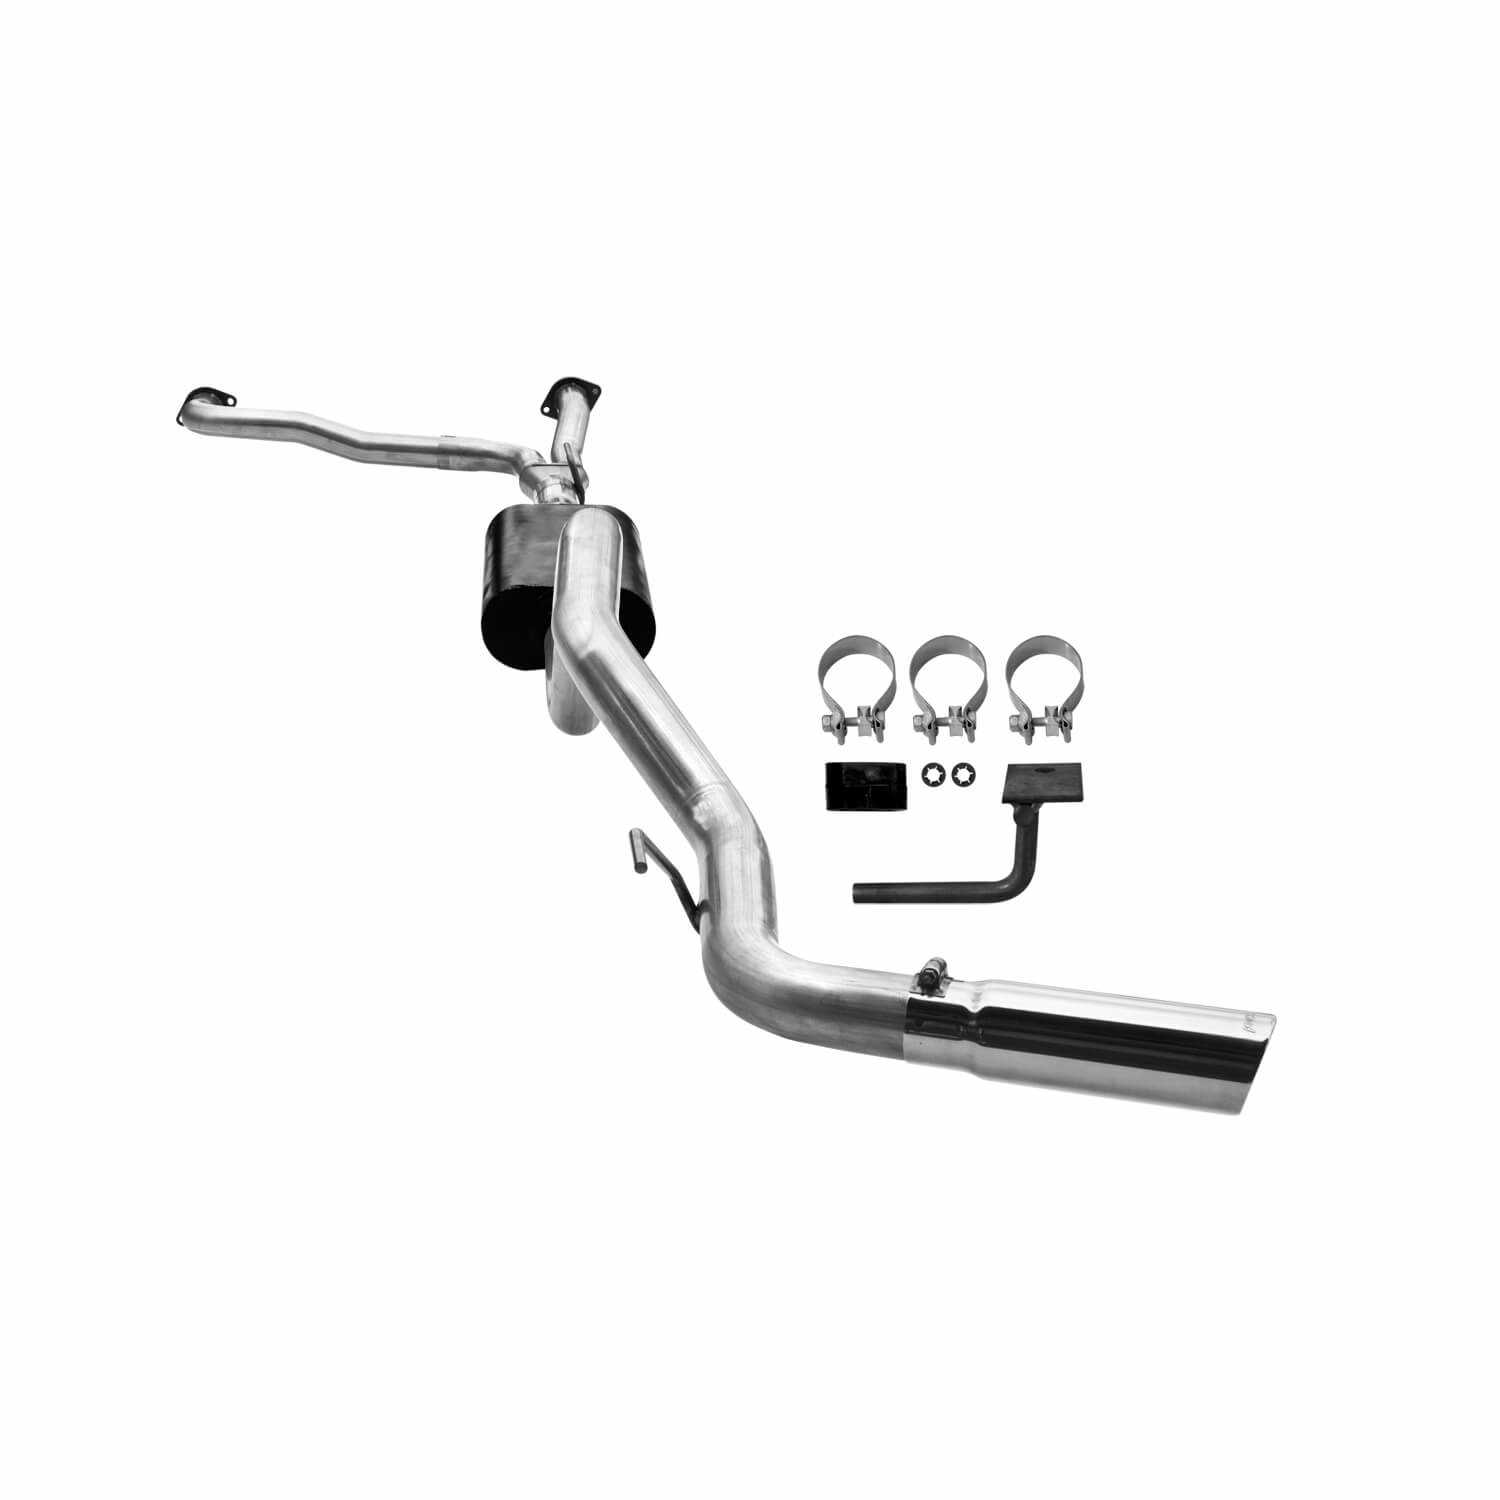 817533 Flowmaster American Thunder Cat Back Exhaust System